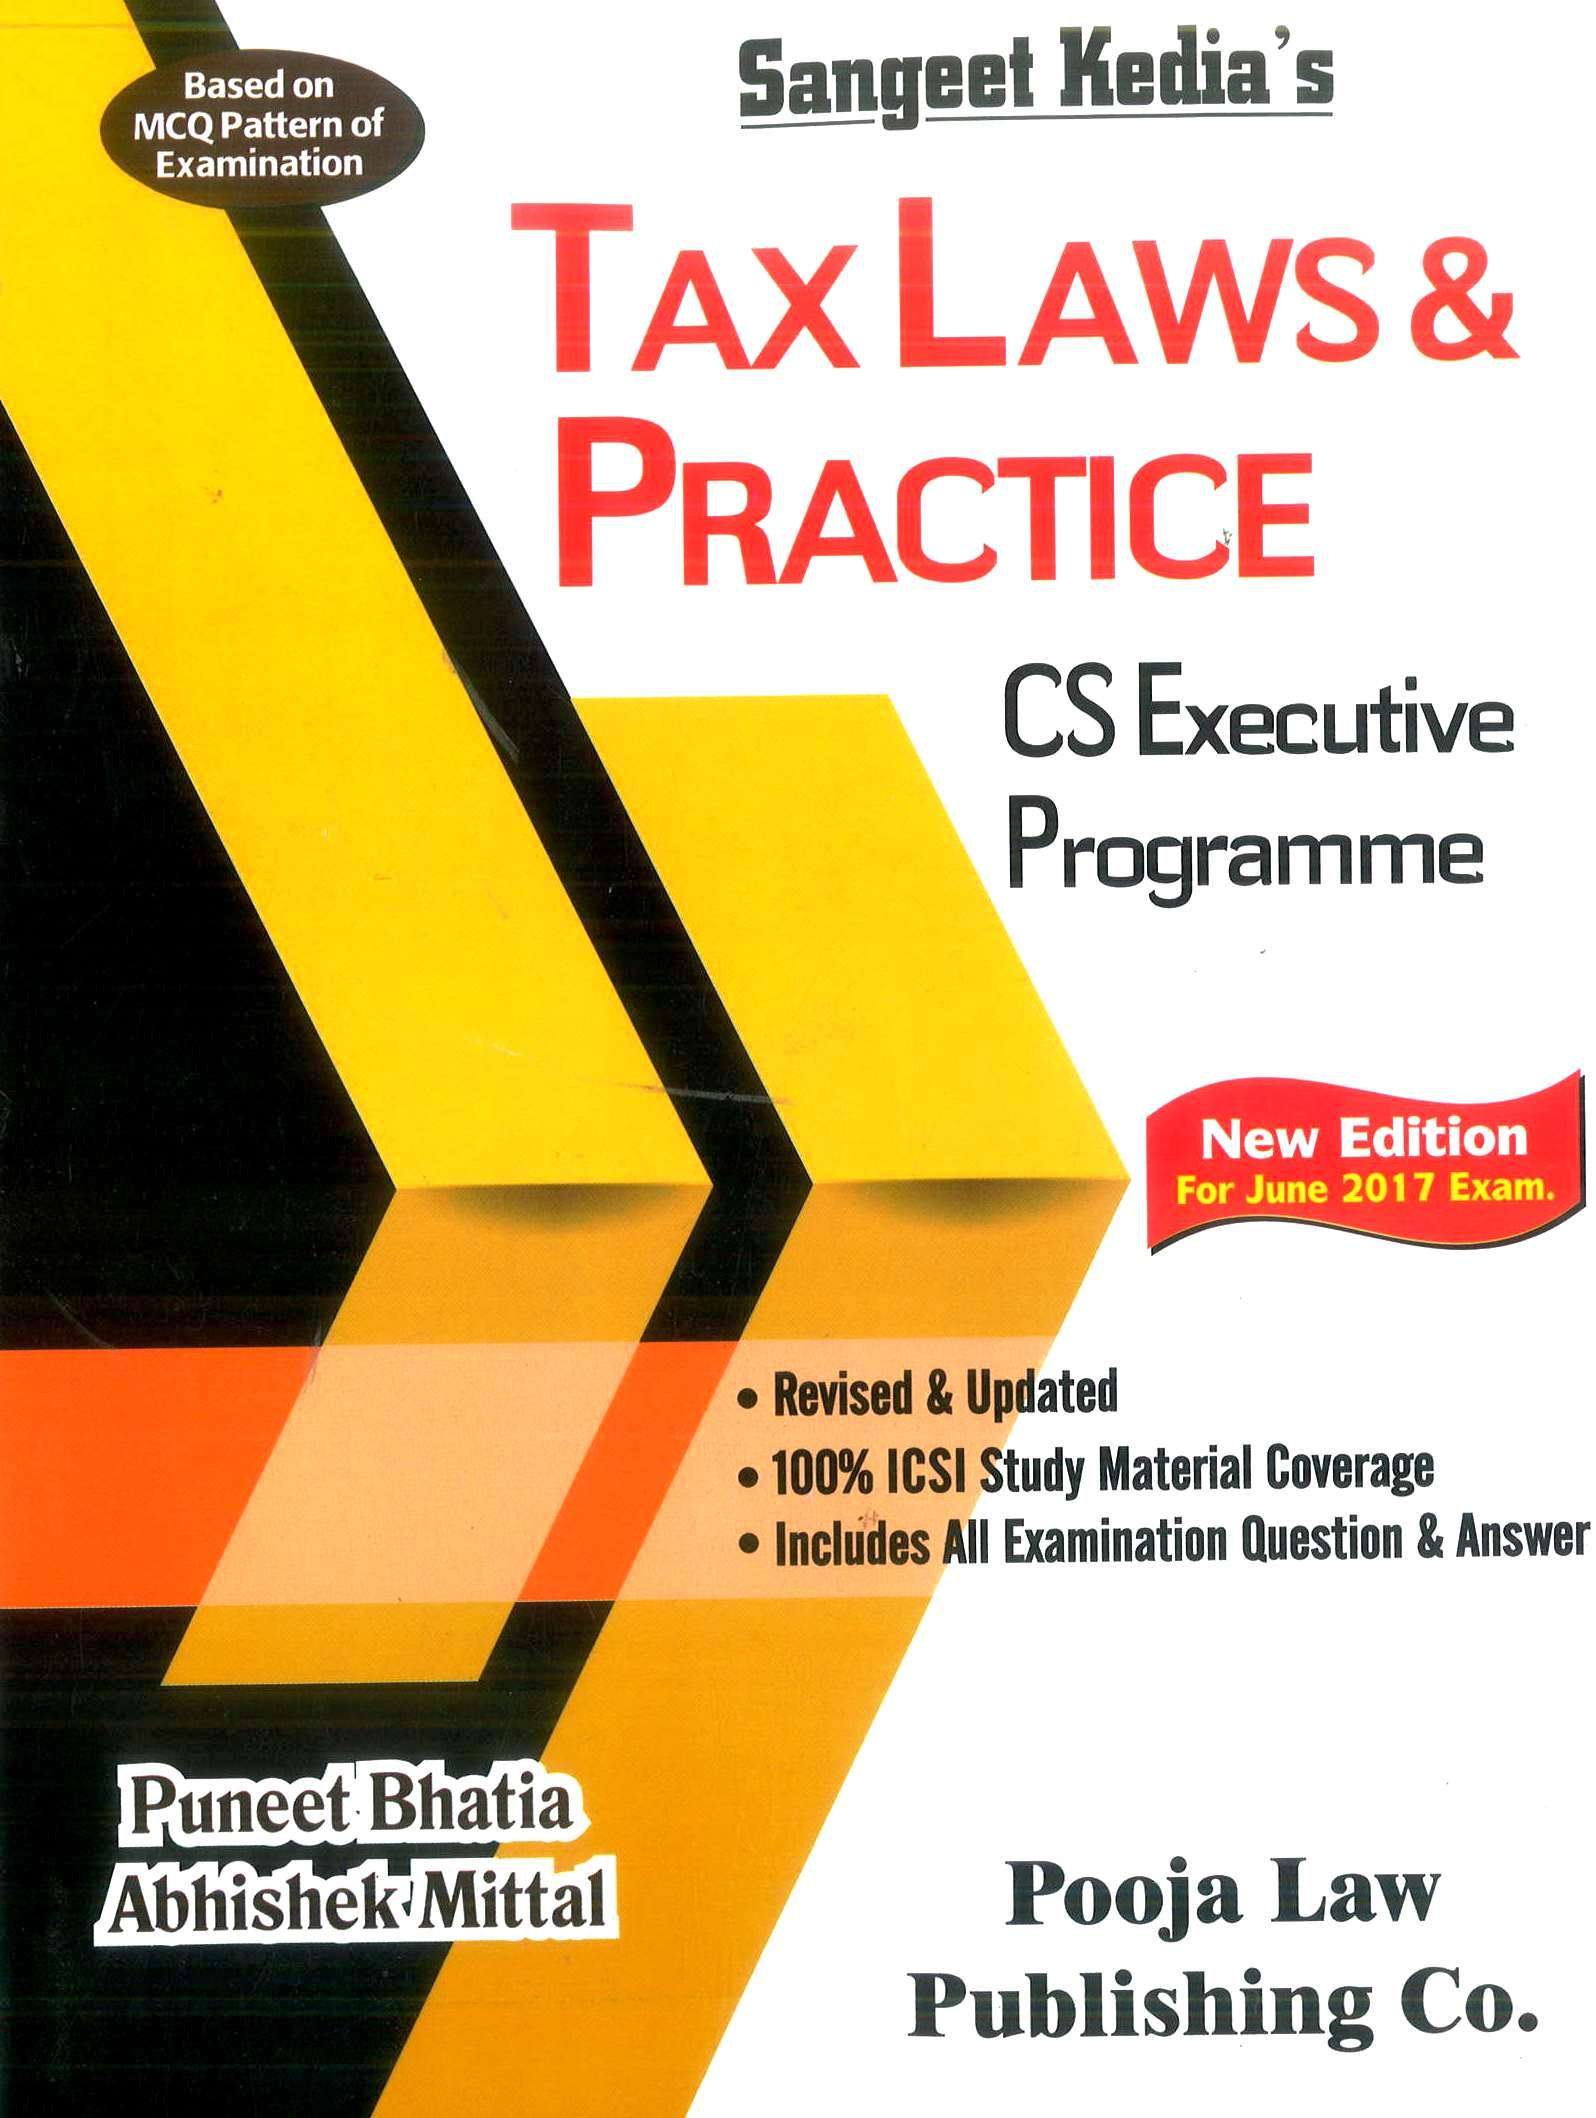 Sangeet Kedia Tax Laws and Practice for CS Executive by Puneet Bhatia and Abhishek Mittal Applicable for June 2017 Exam (Pooja Law House Publishing) Edition 8th, 2017